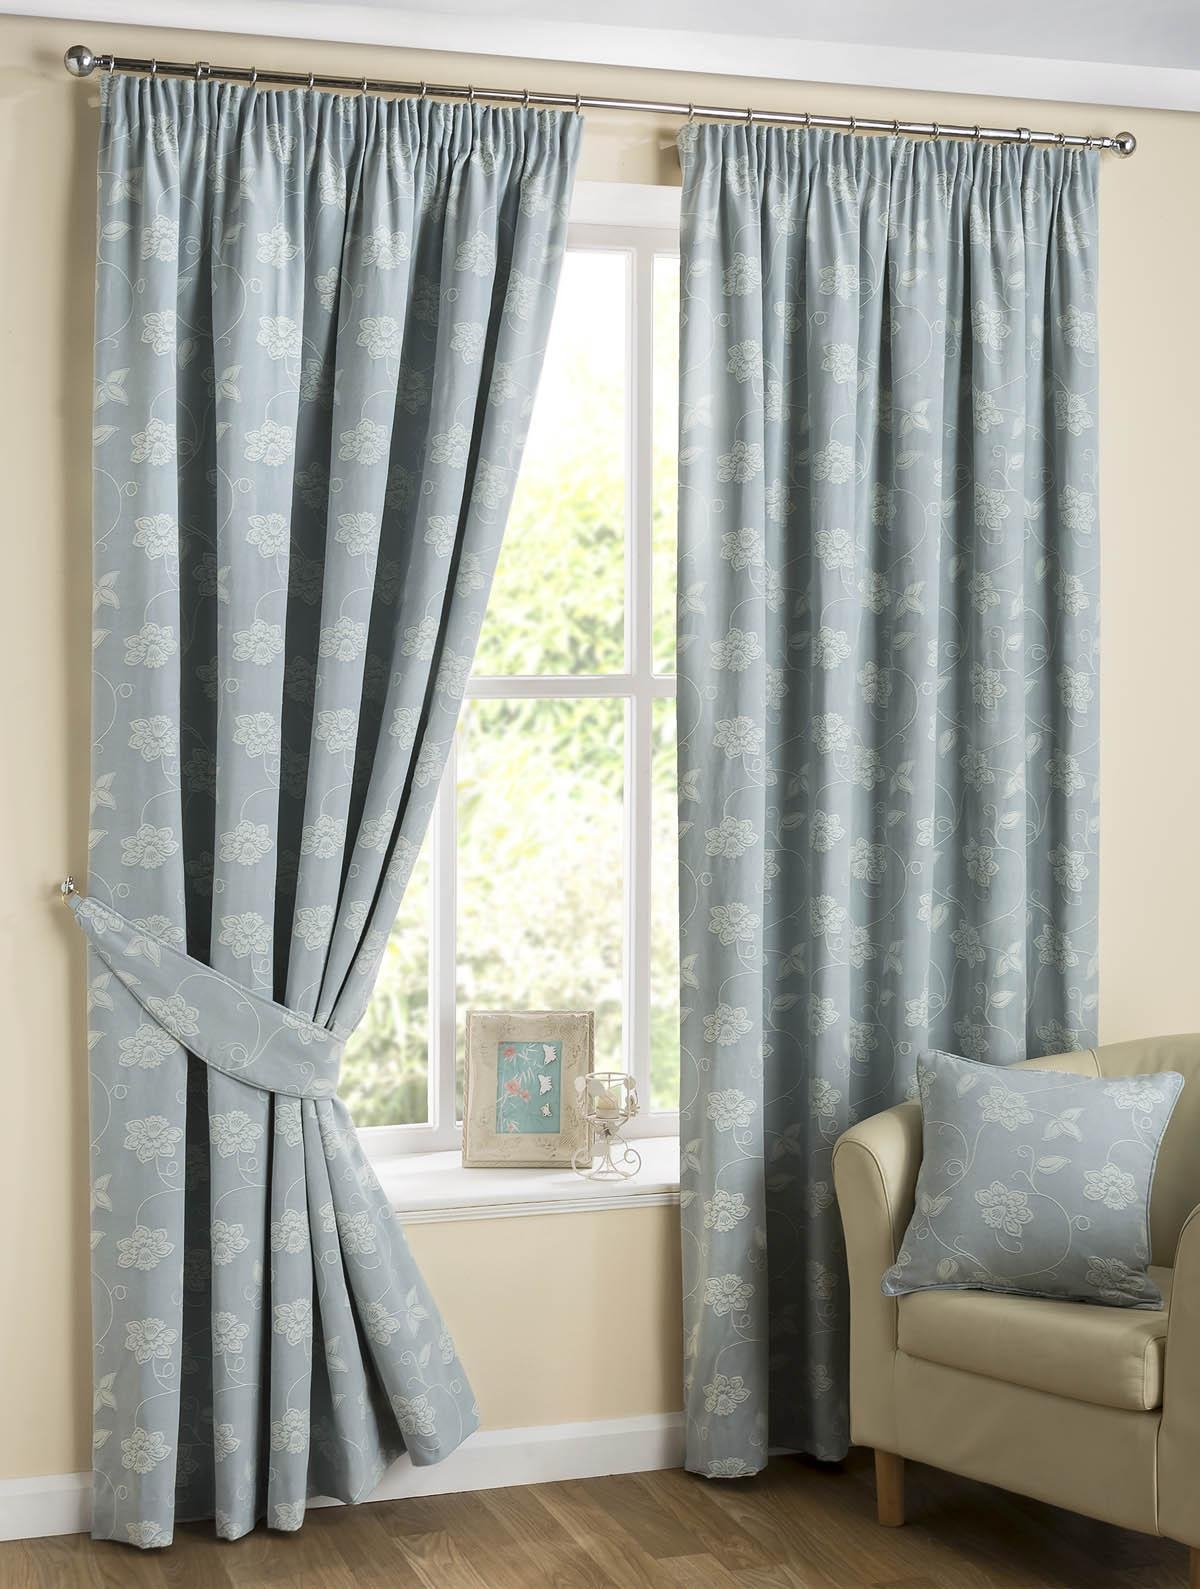 Duck Egg Blue Blackout Curtains With Regard To Duck Egg Blue Blackout Curtains (View 5 of 15)